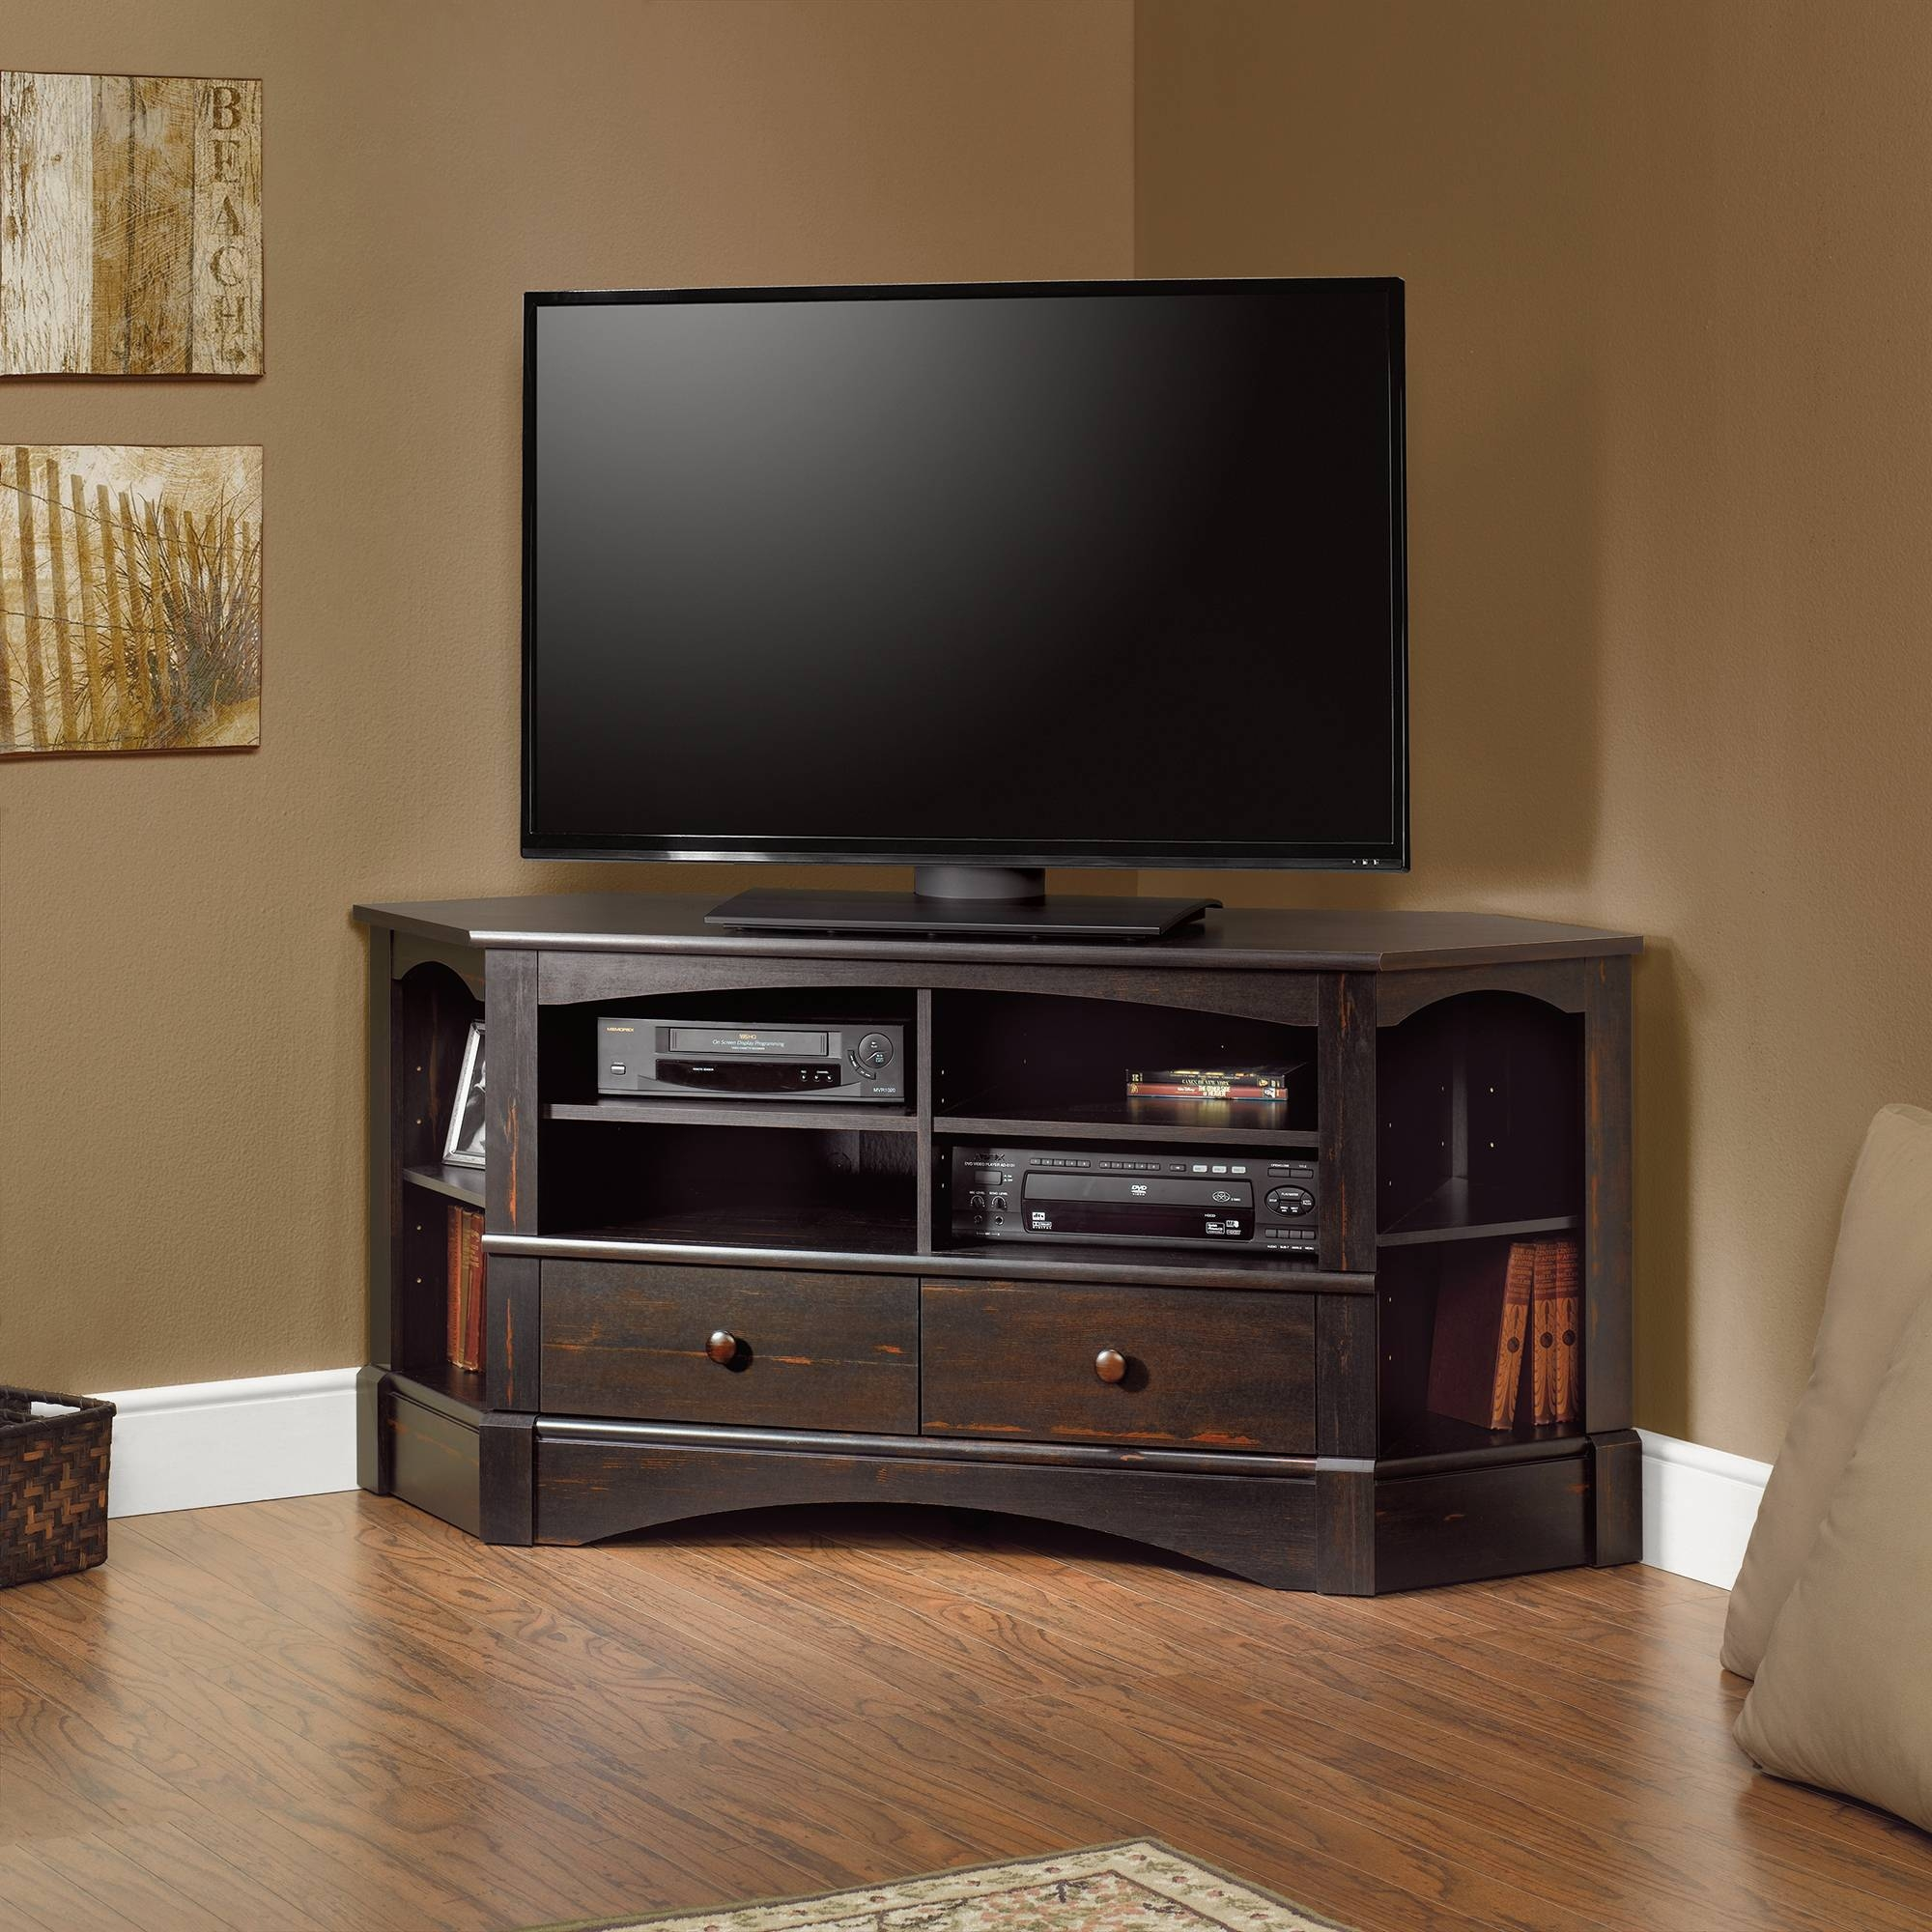 Harbor View | Corner Entertainment Credenza | 402902 | Sauder pertaining to Black Wood Corner Tv Stands (Image 7 of 15)